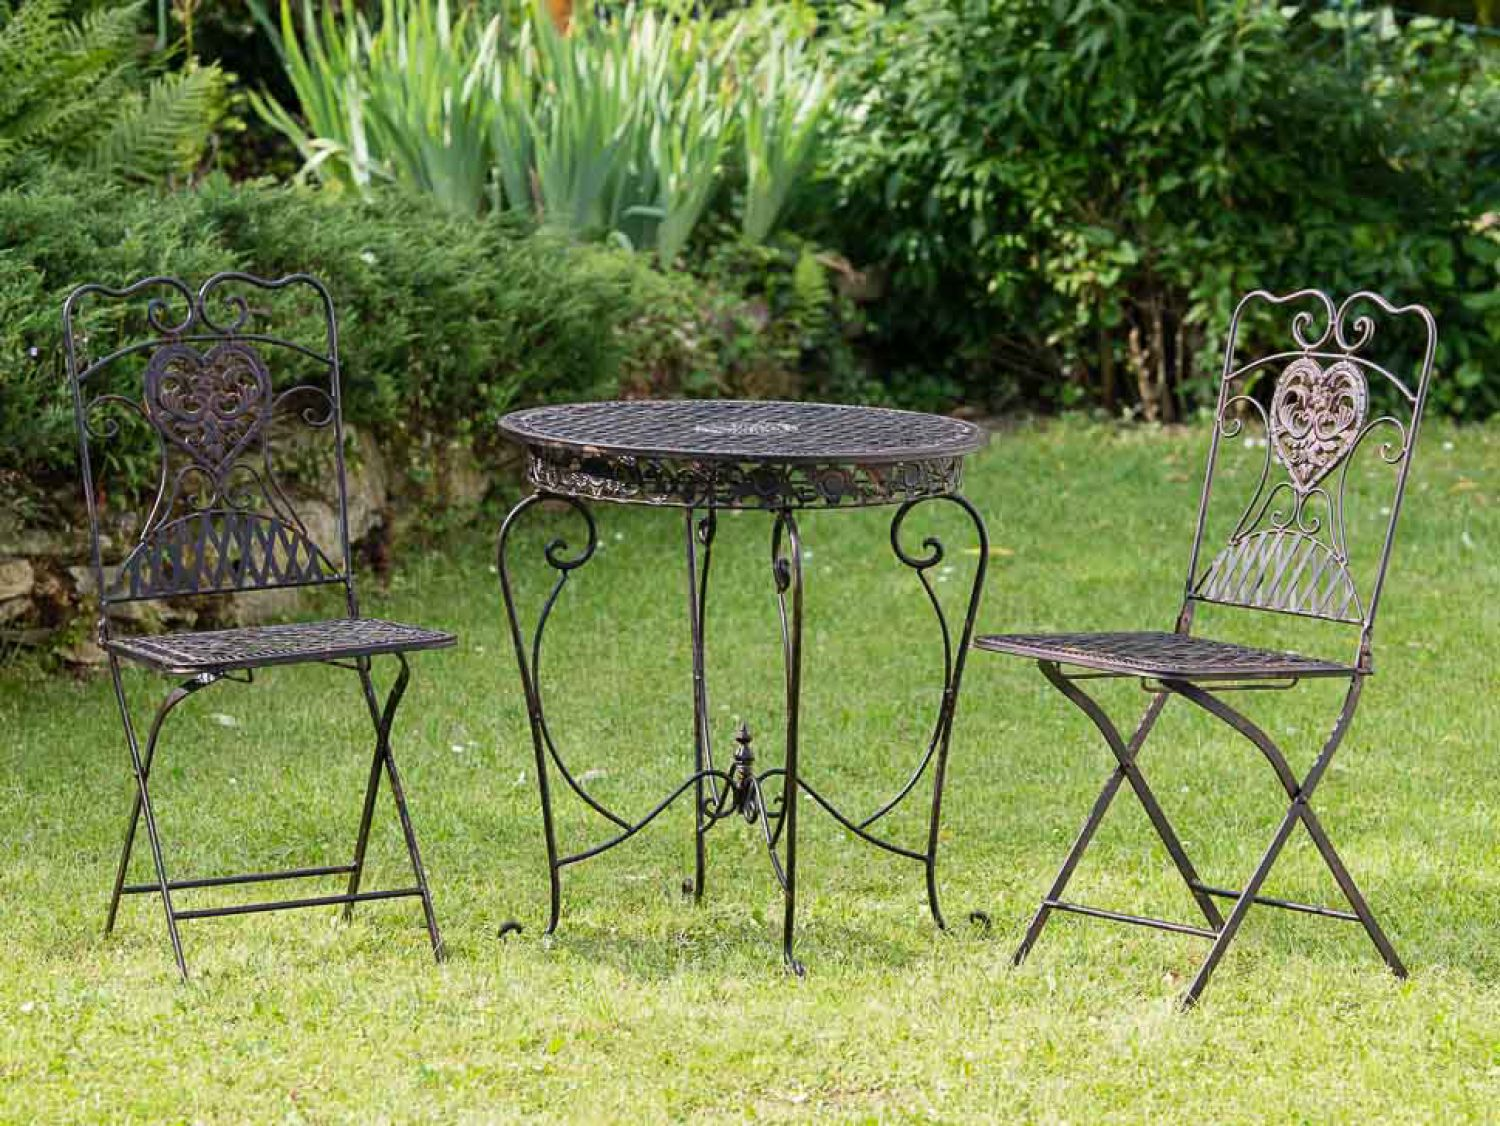 gartentisch 2x stuhl eisen antik stil bistrom bel gartenm bel braun ebay. Black Bedroom Furniture Sets. Home Design Ideas